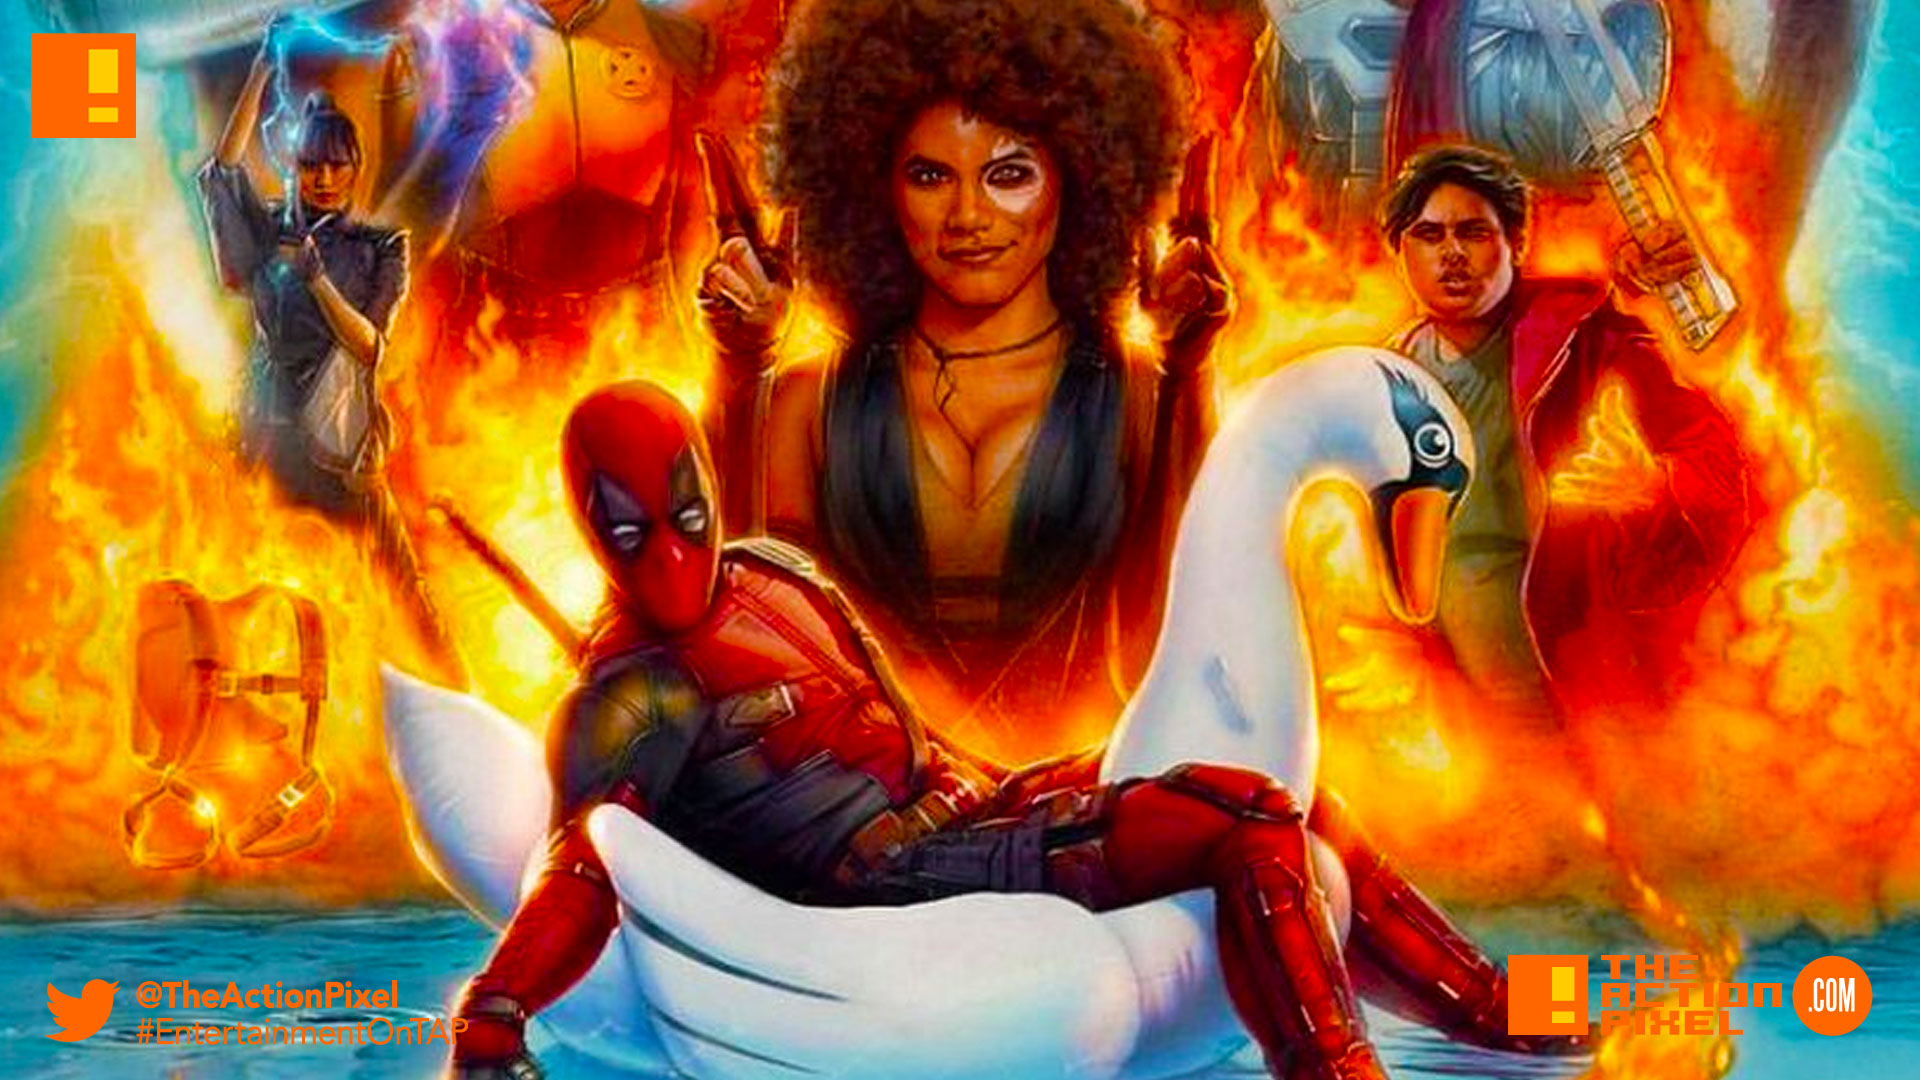 final trailer, josh brolin, cable,deadpool, deadpool 2,deadpool 2, entertainment on tap,deadpool, deadpool 2, marvel, 20th century fox, the action pixel, entertainment on tap,poster, poster art, trailer, zazie beetz, imax, imax poster, poster,